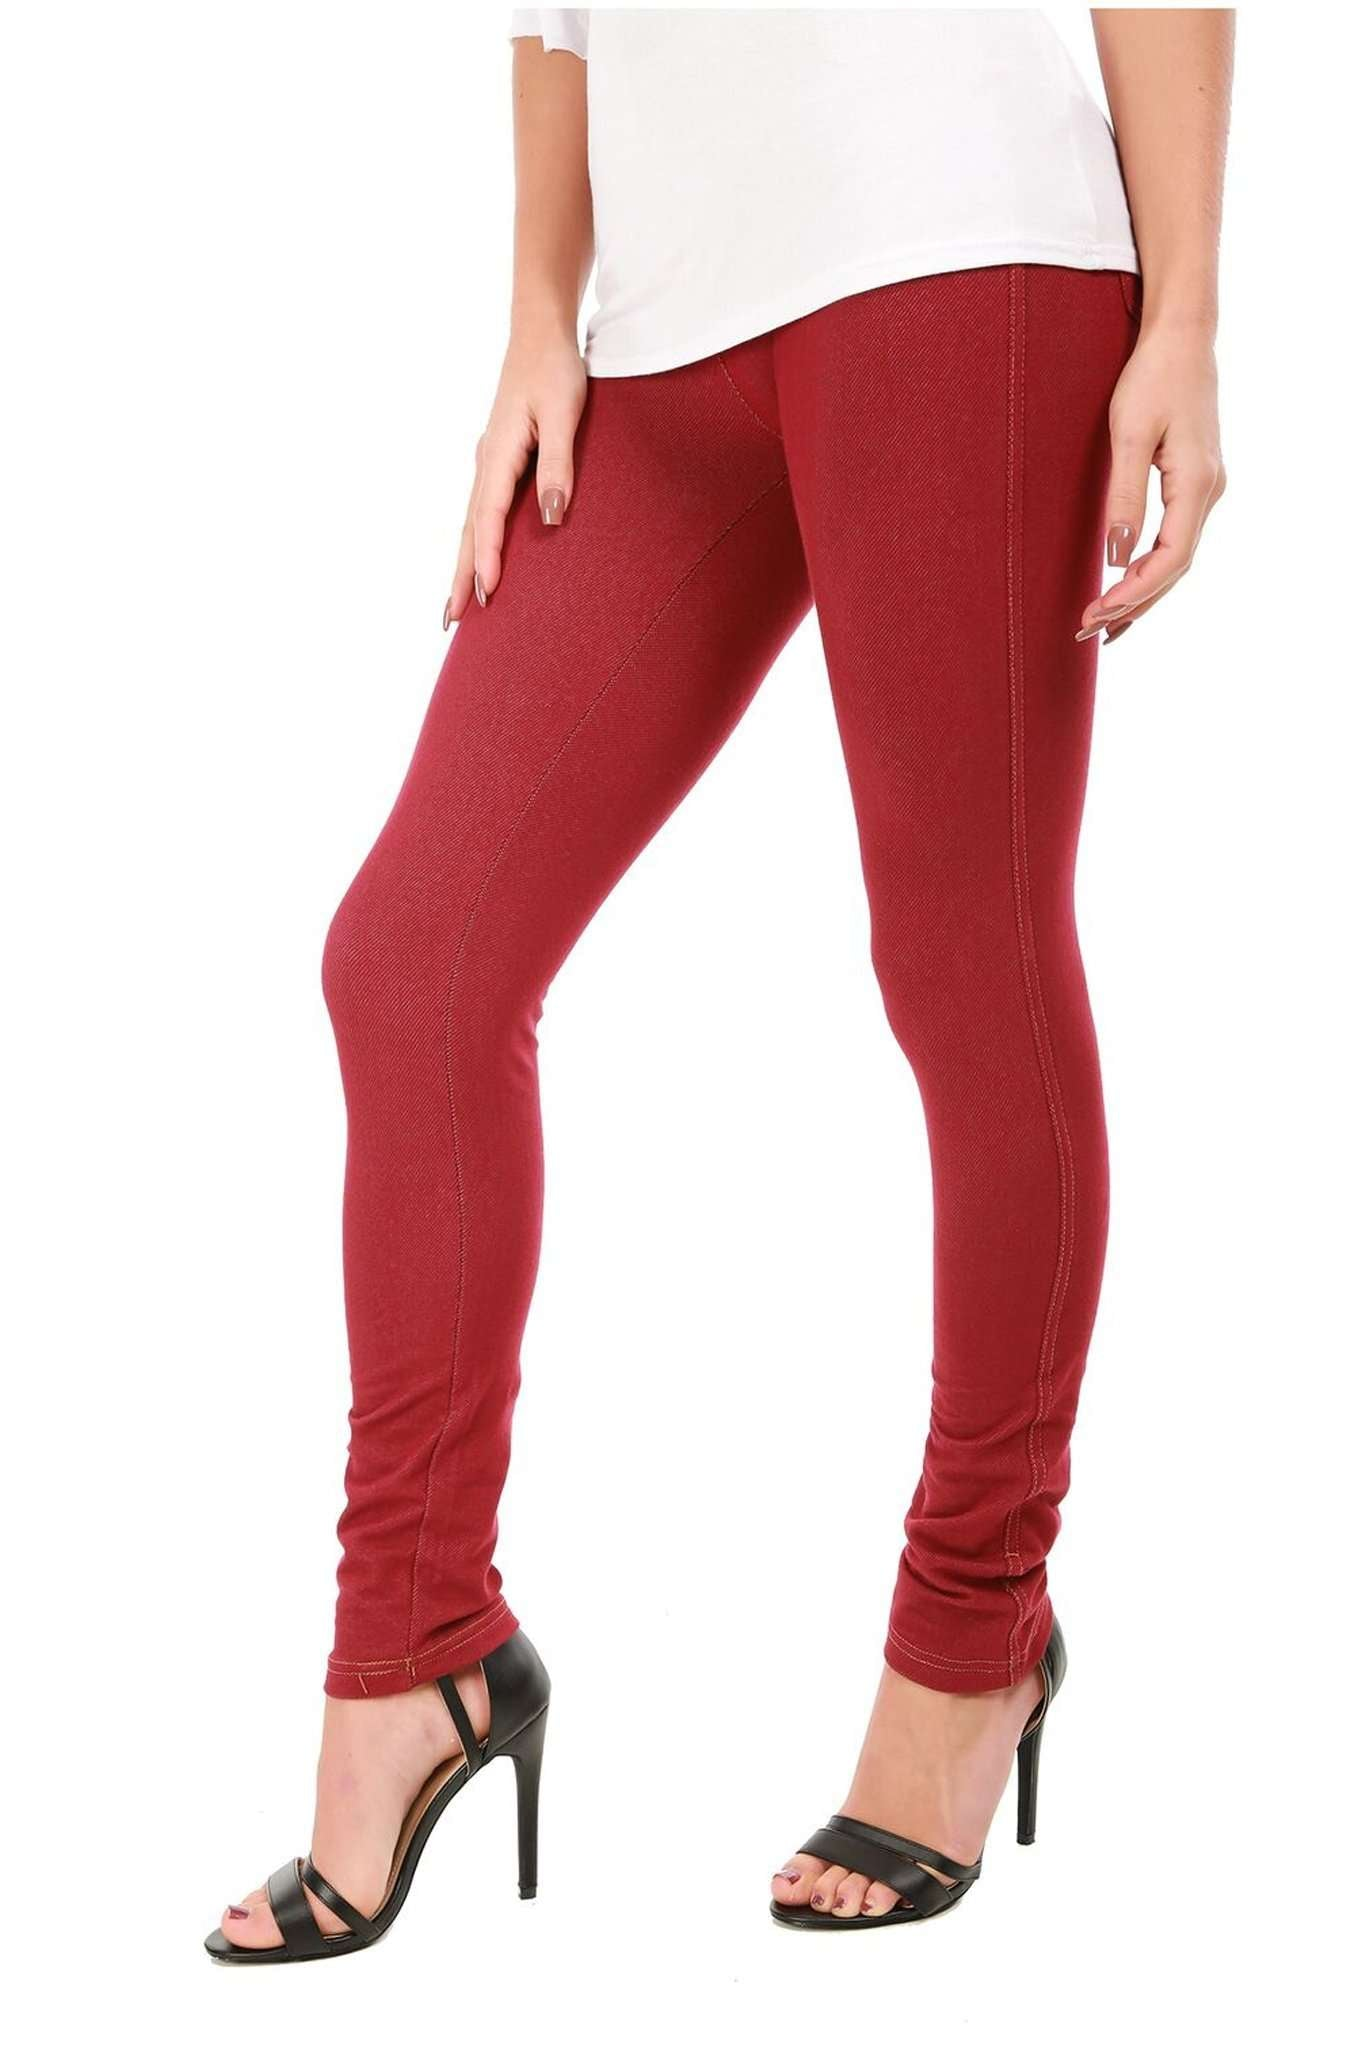 Geraldine Stretch Skinny Fit Plain Denim Jeggings - bejealous-com